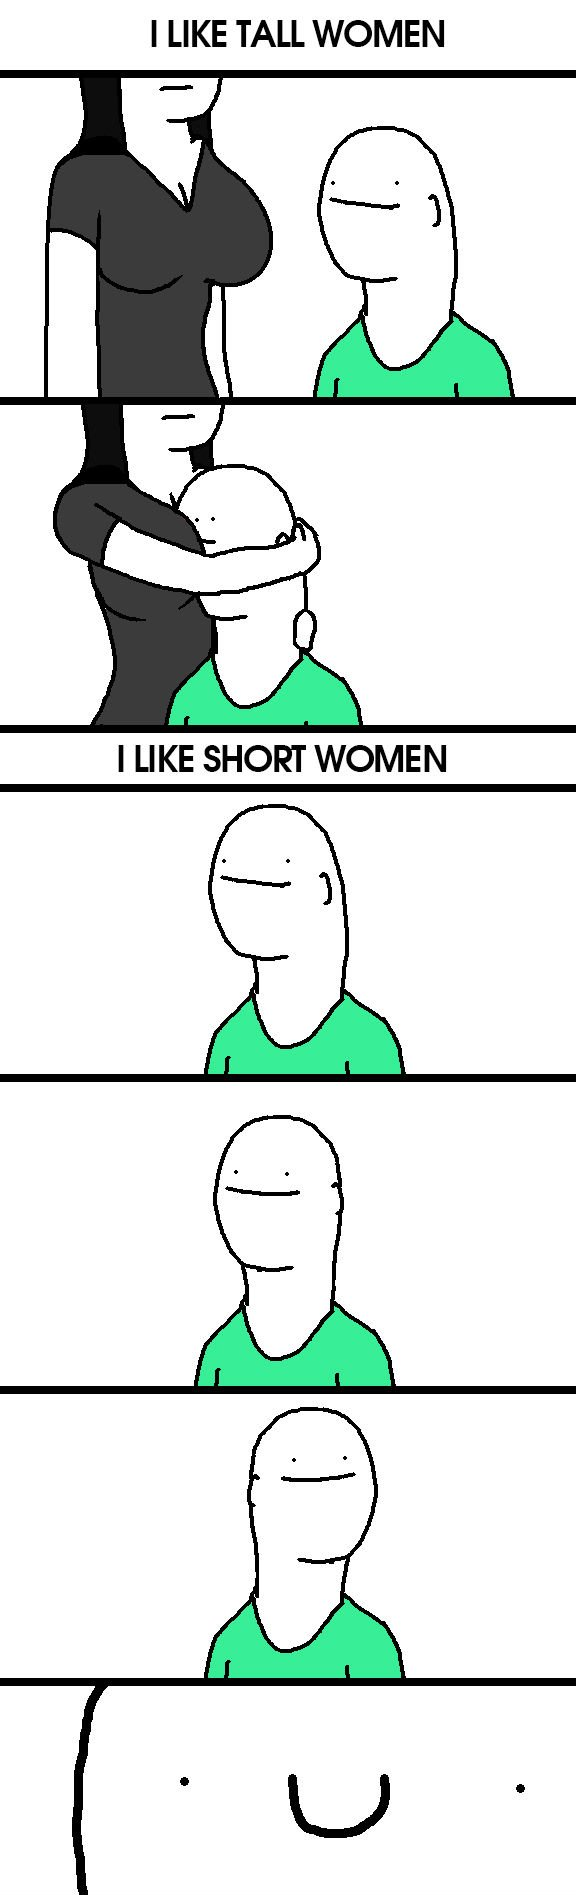 i-like-tall-women-comic